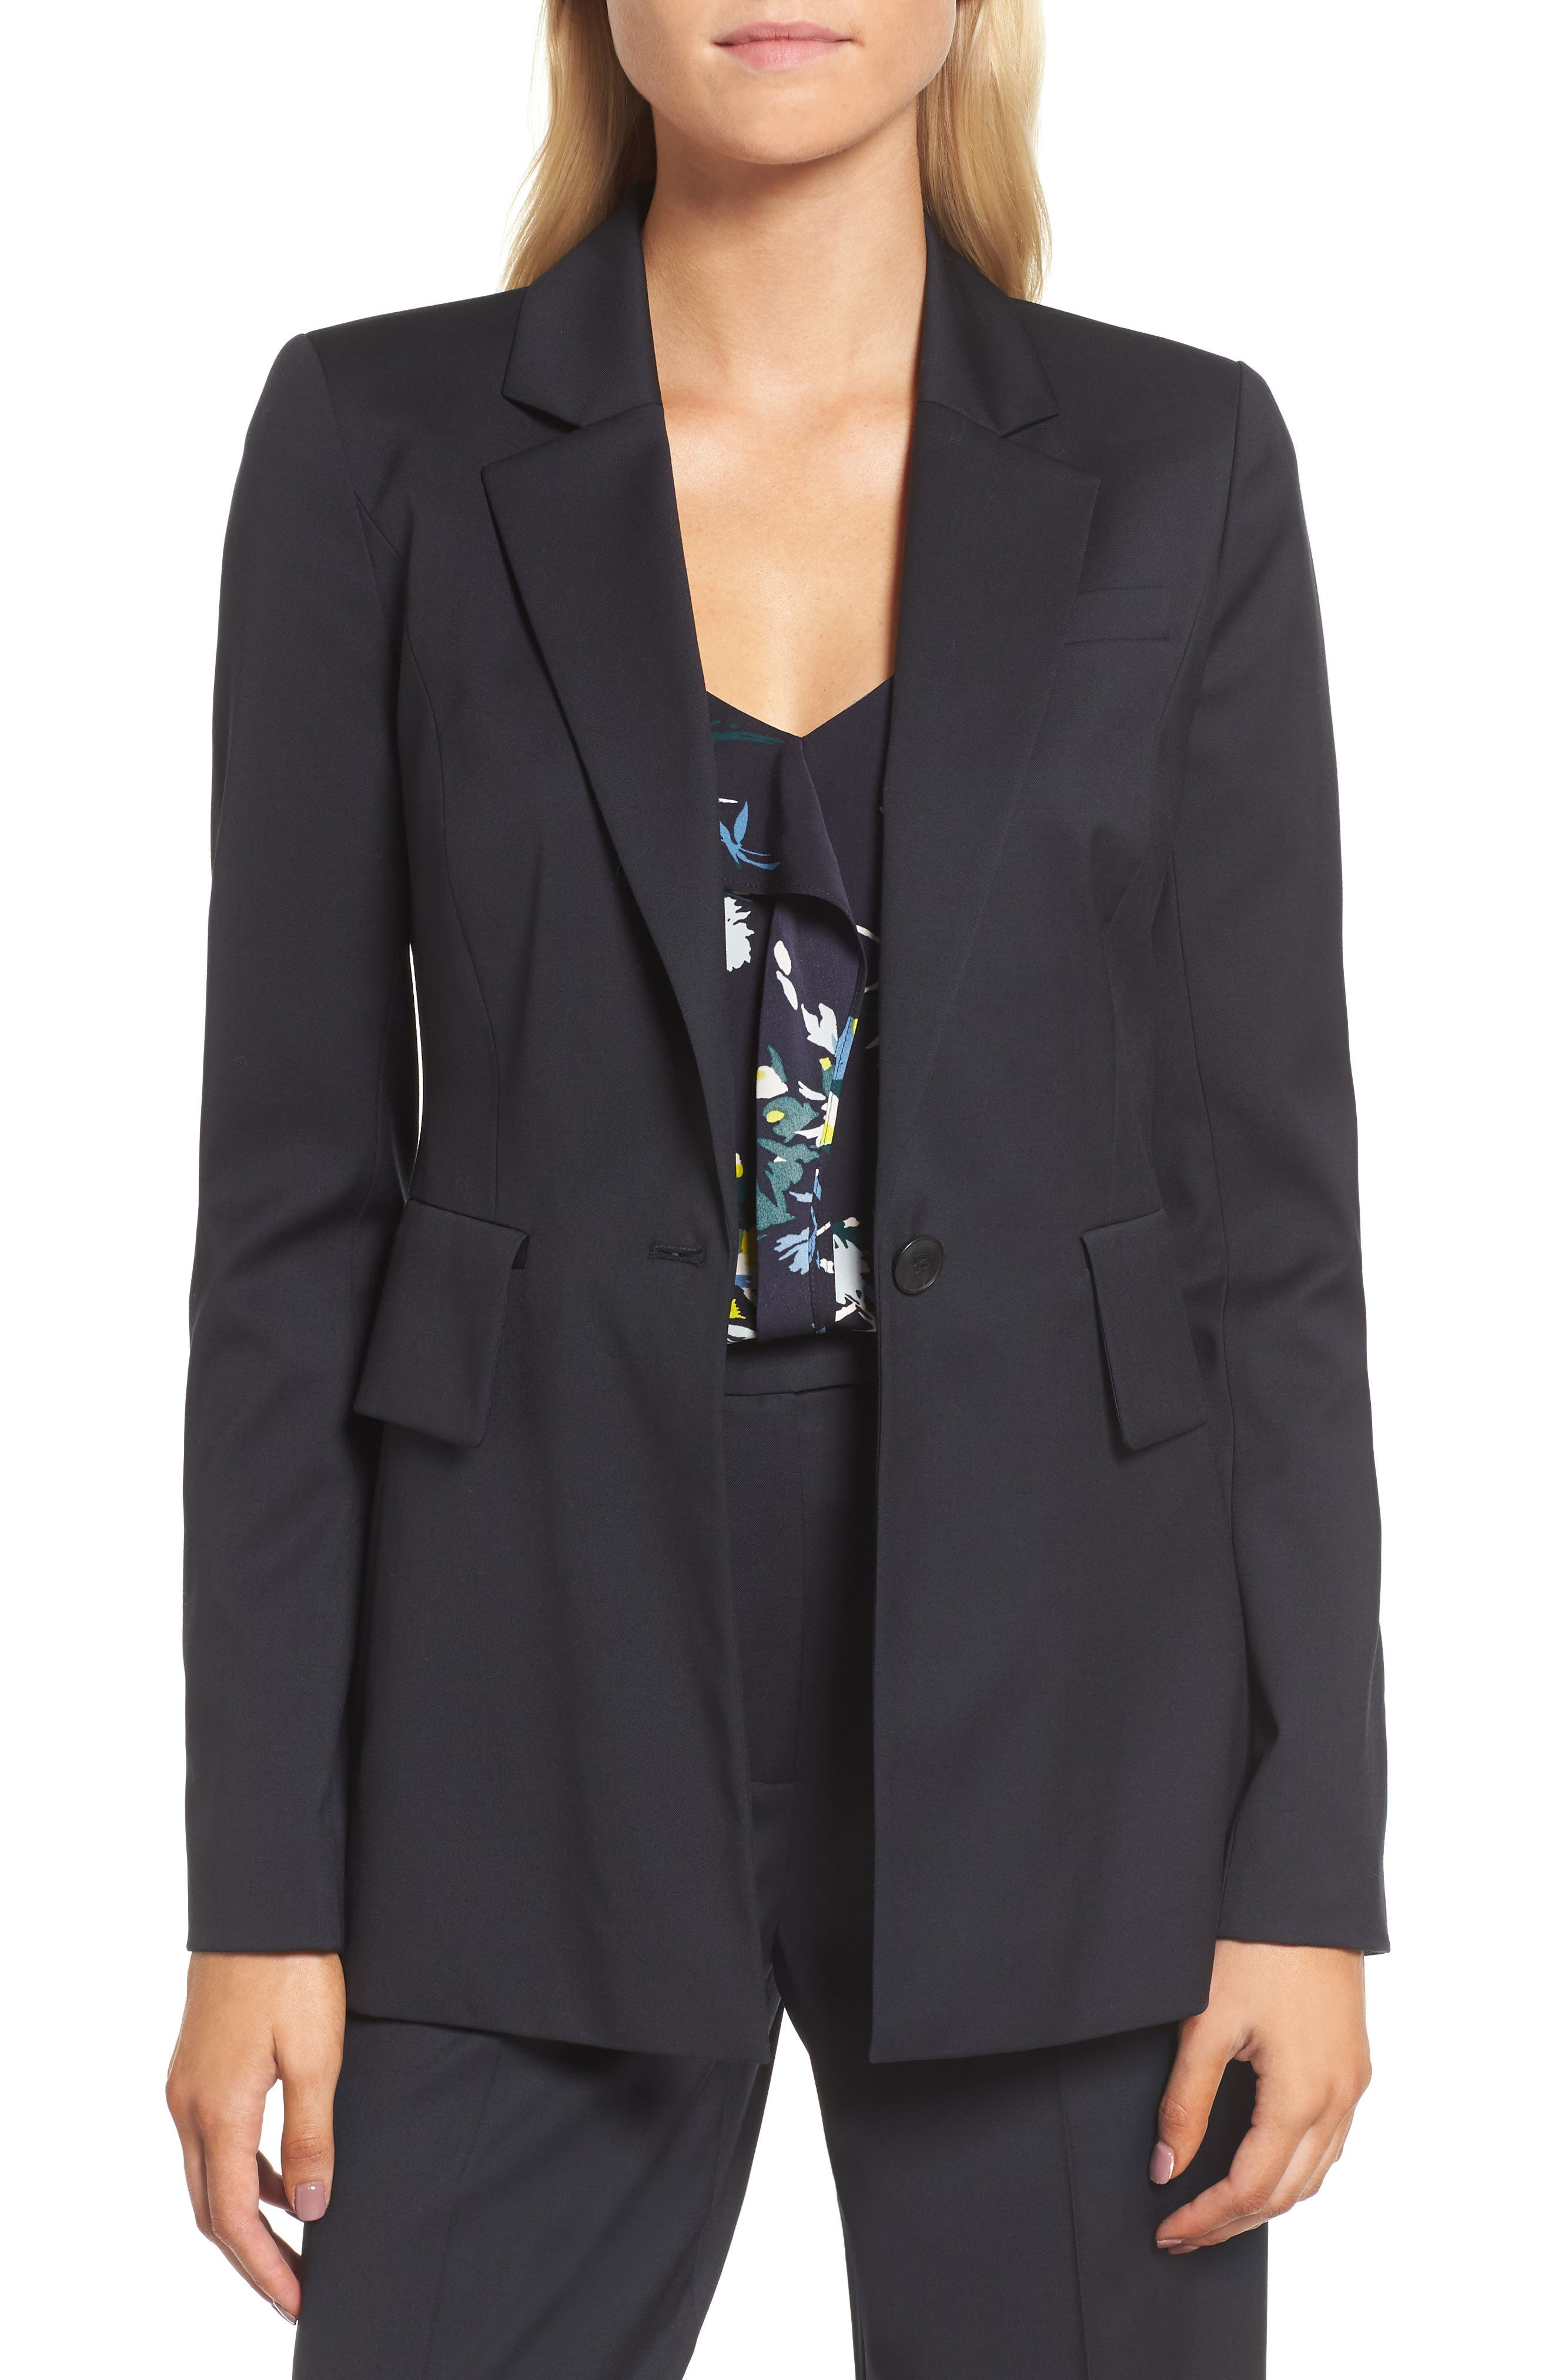 Main Image - Lewit Square Shoulder Suit Jacket